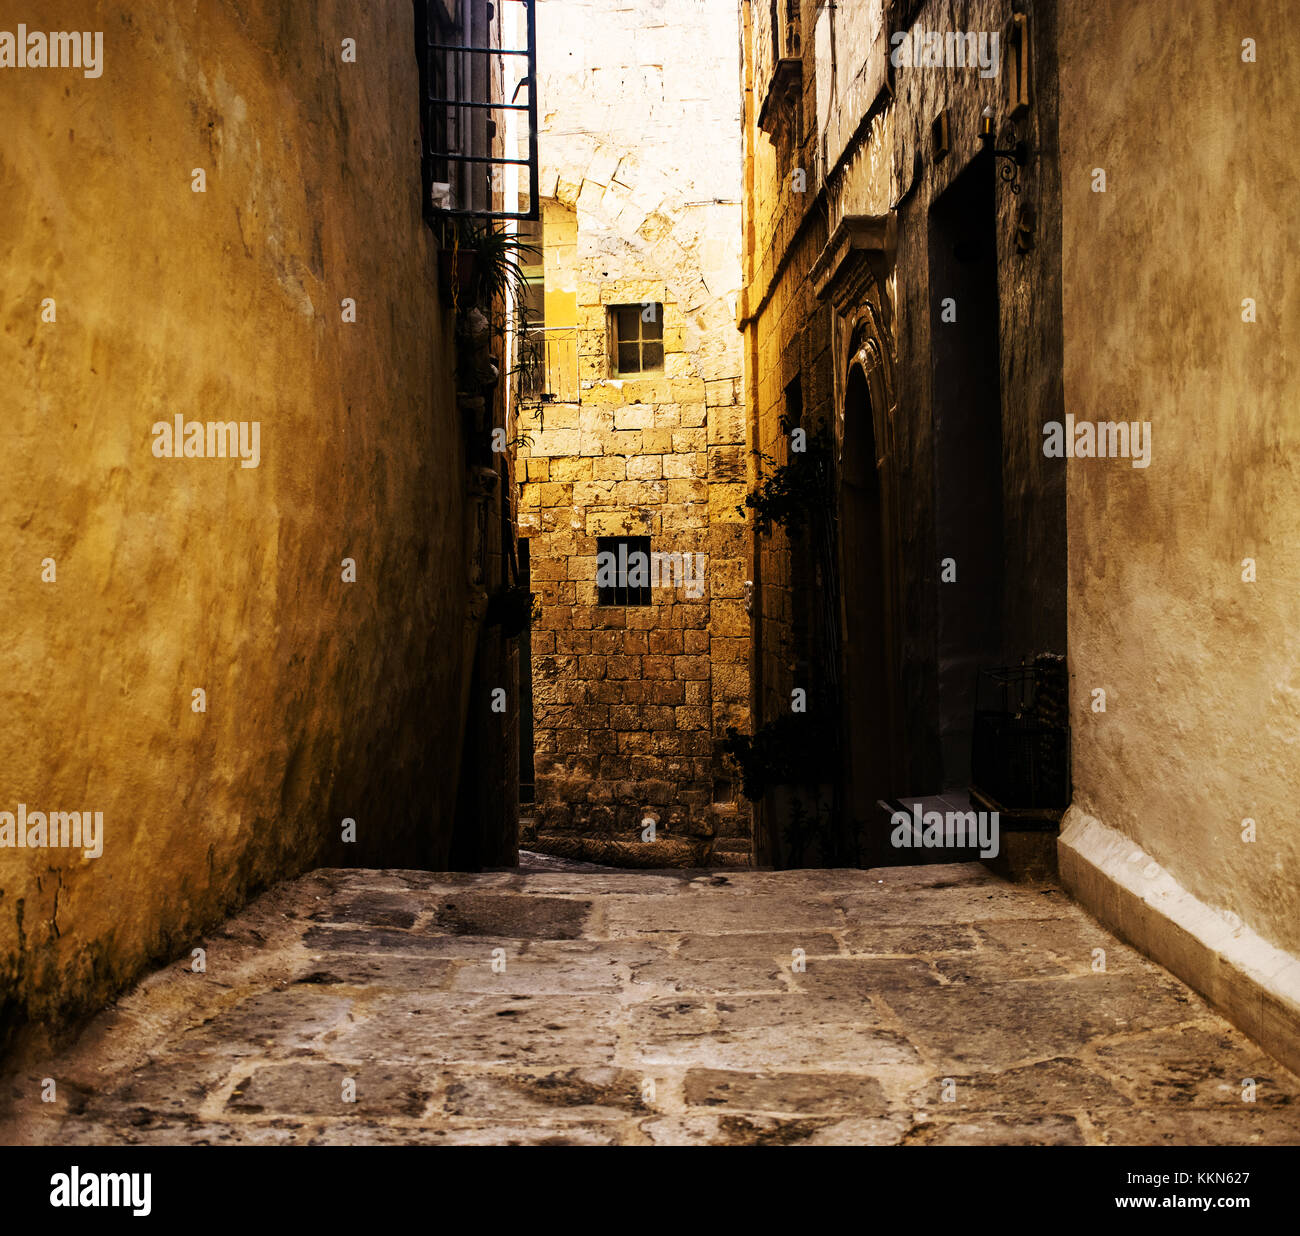 A narrow typical and historic road in Mdina, Malta - Stock Image